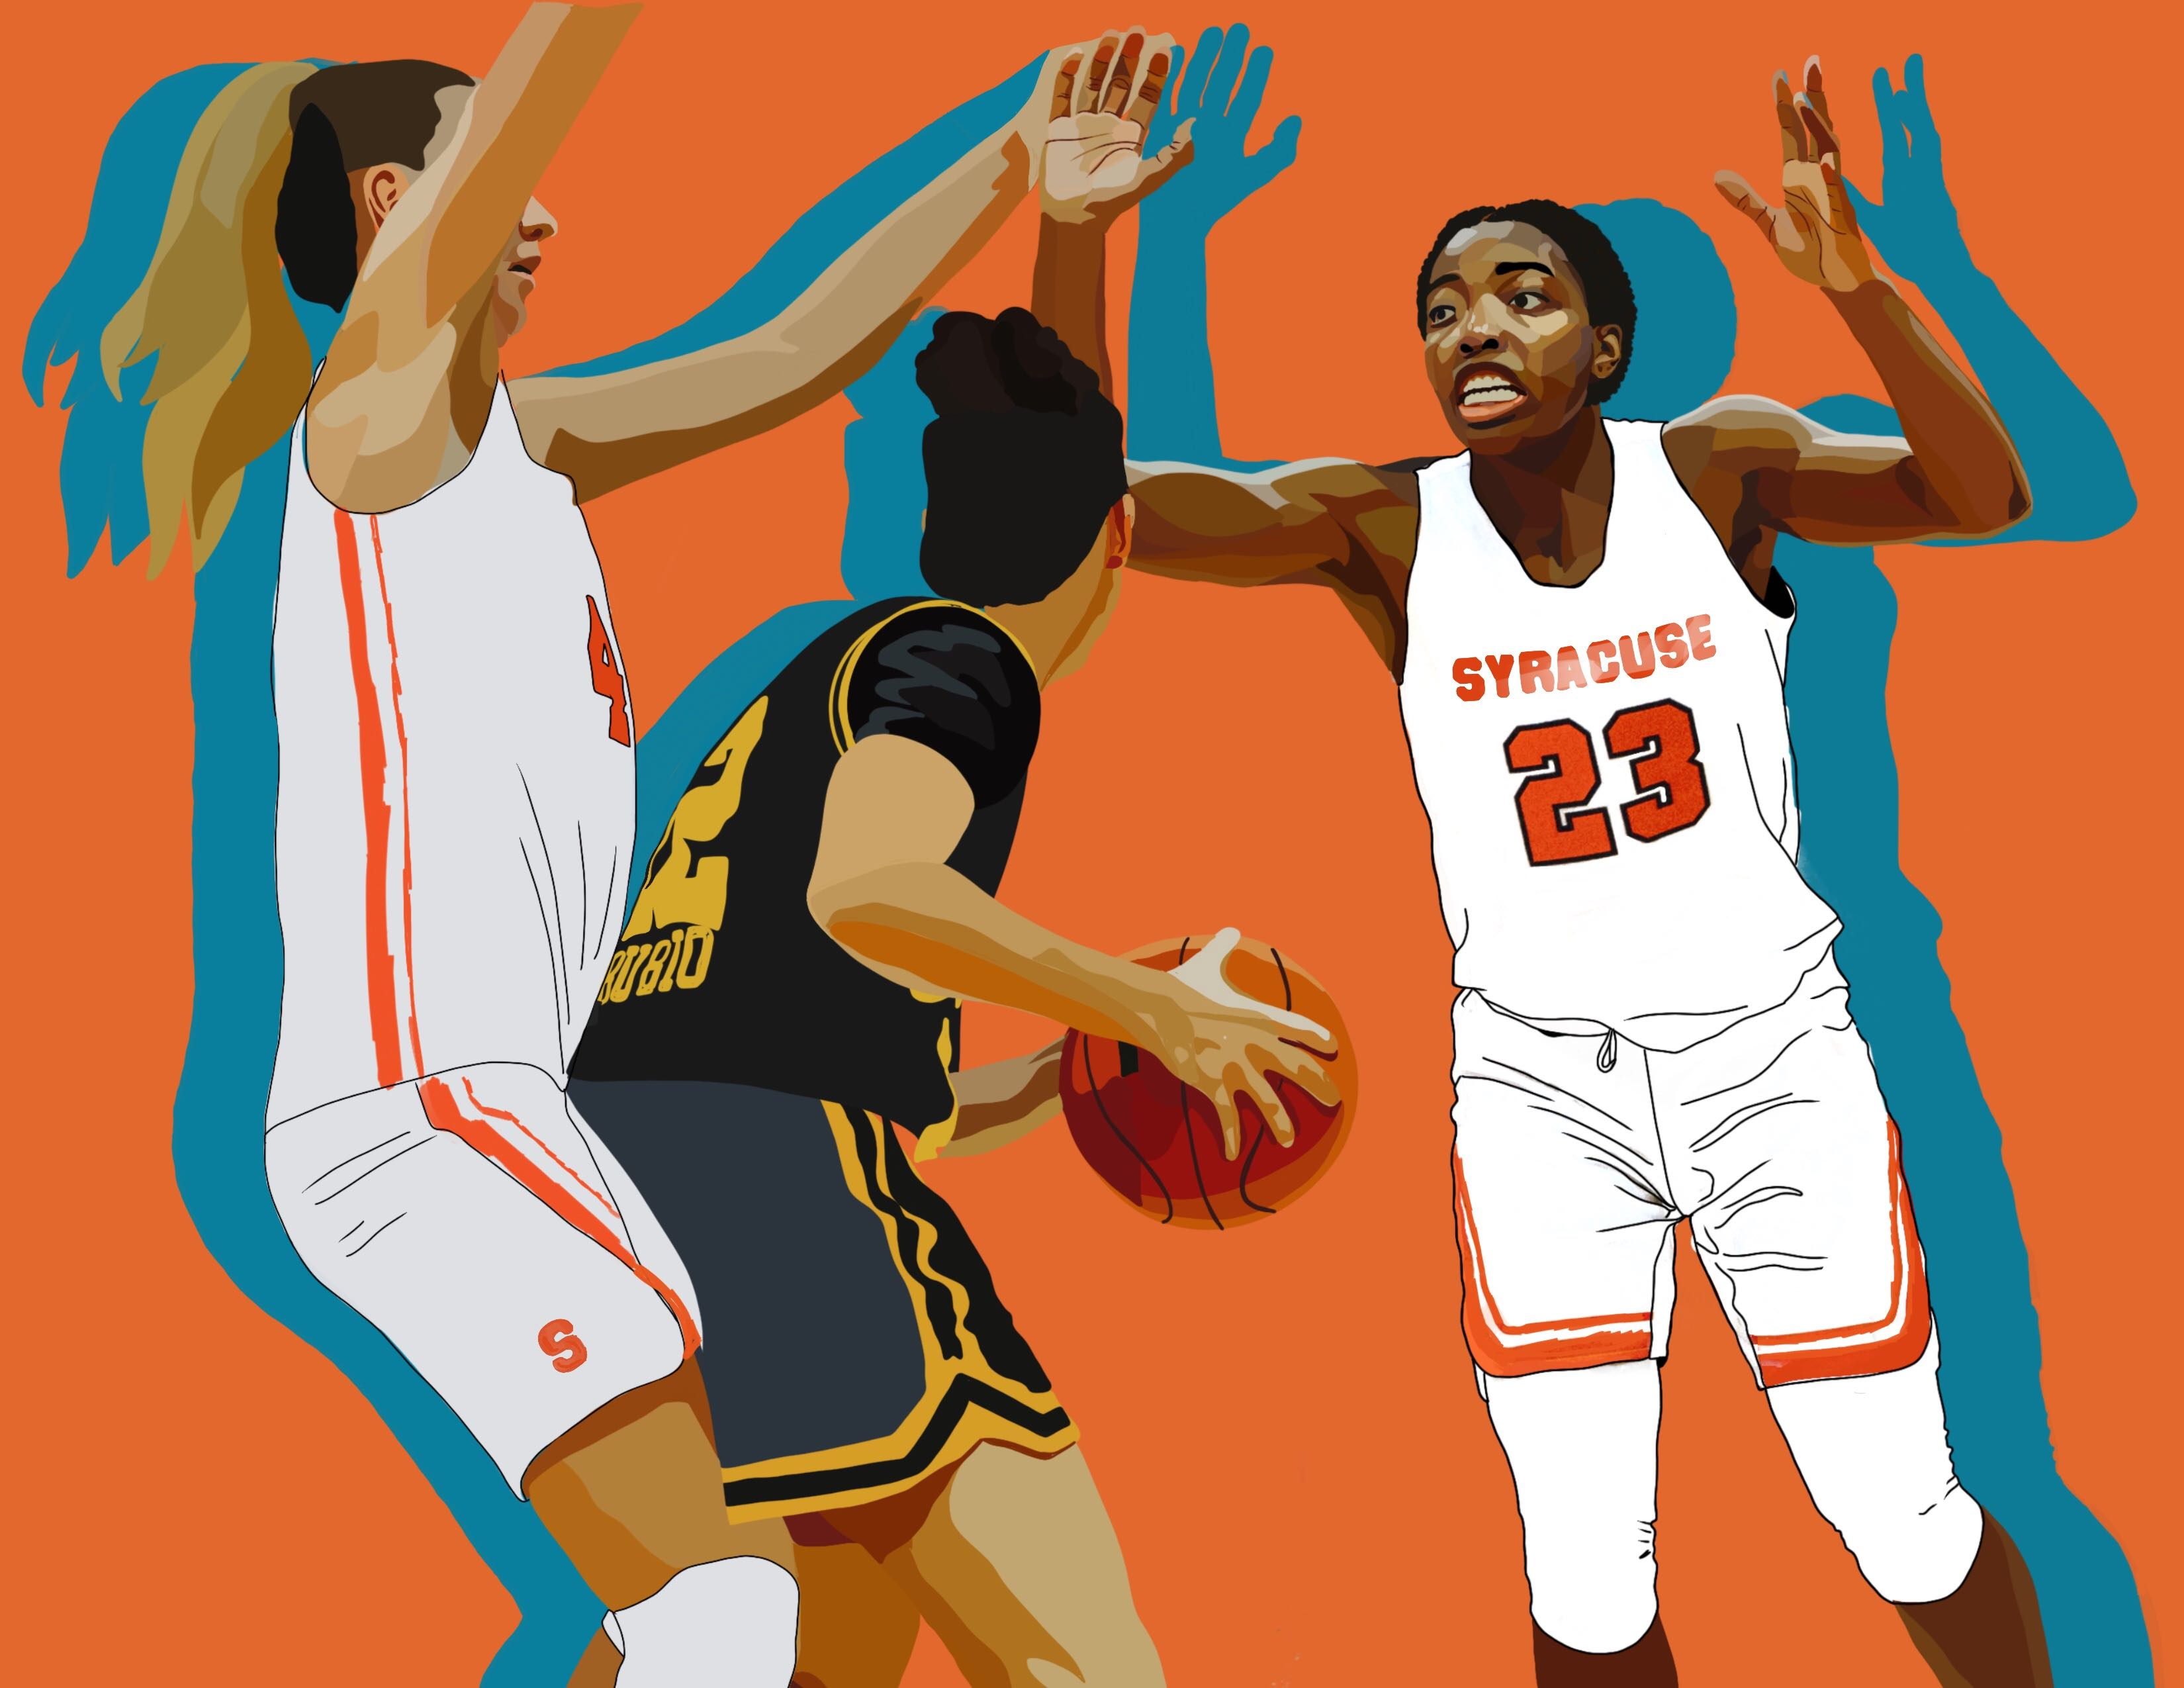 How The Full Court Press Distinguishes Syracuse From The